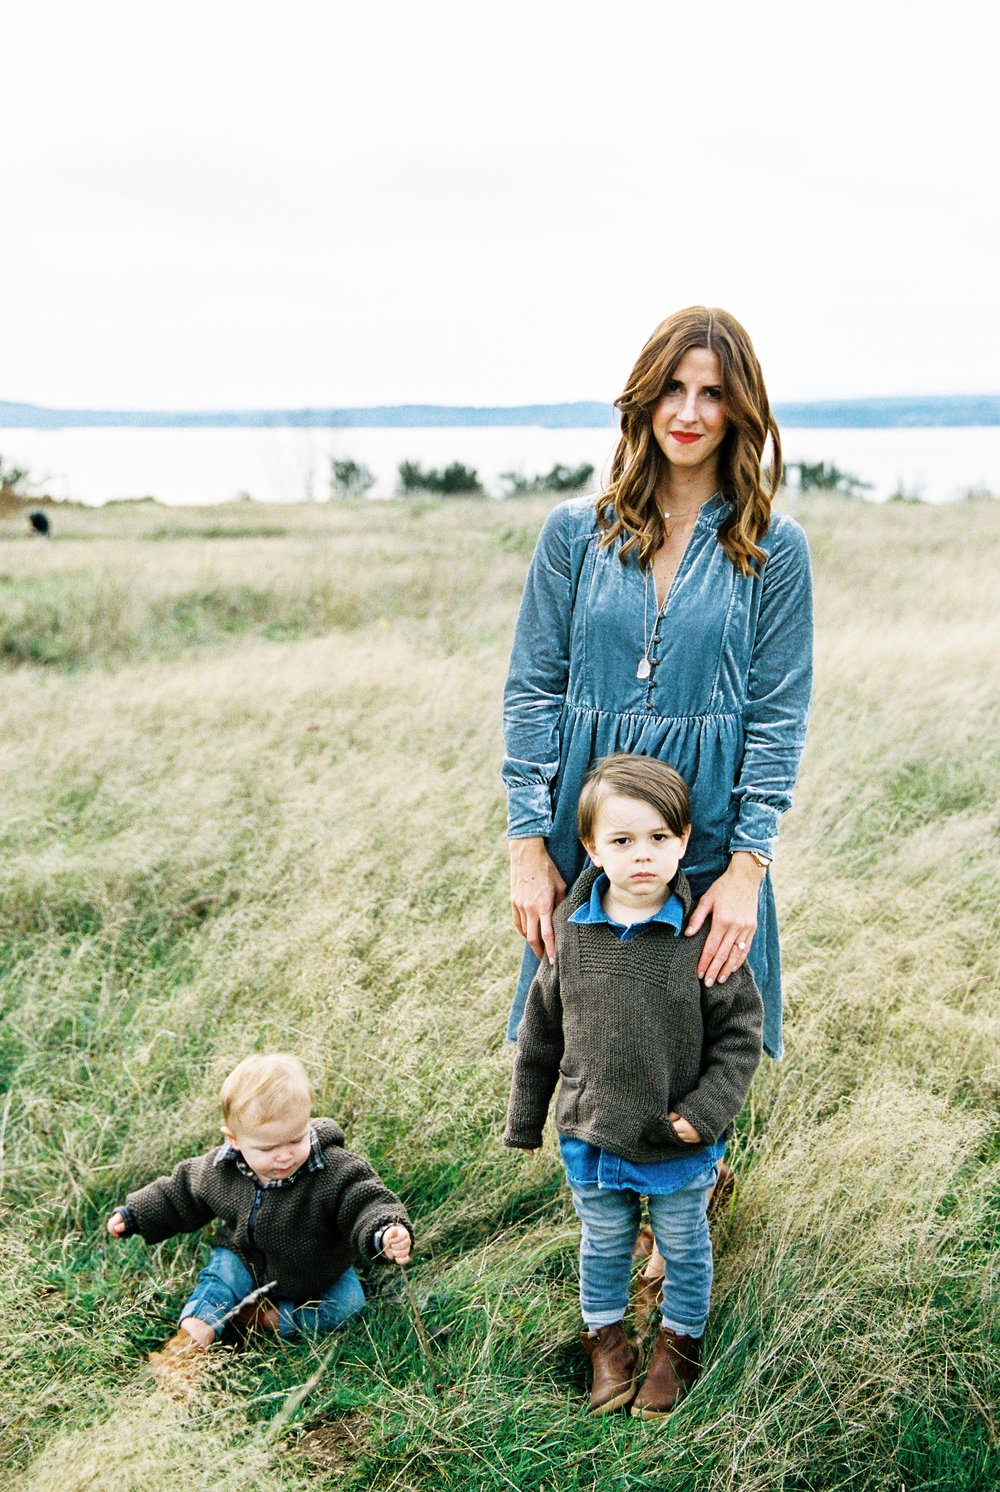 seattle family photographer photo discovery park children child kids kid mom dad brother double exposure film kodak portra 400 35mm pudget sound most popular top best rated photographer rachael kruse photography meg kilcup fall